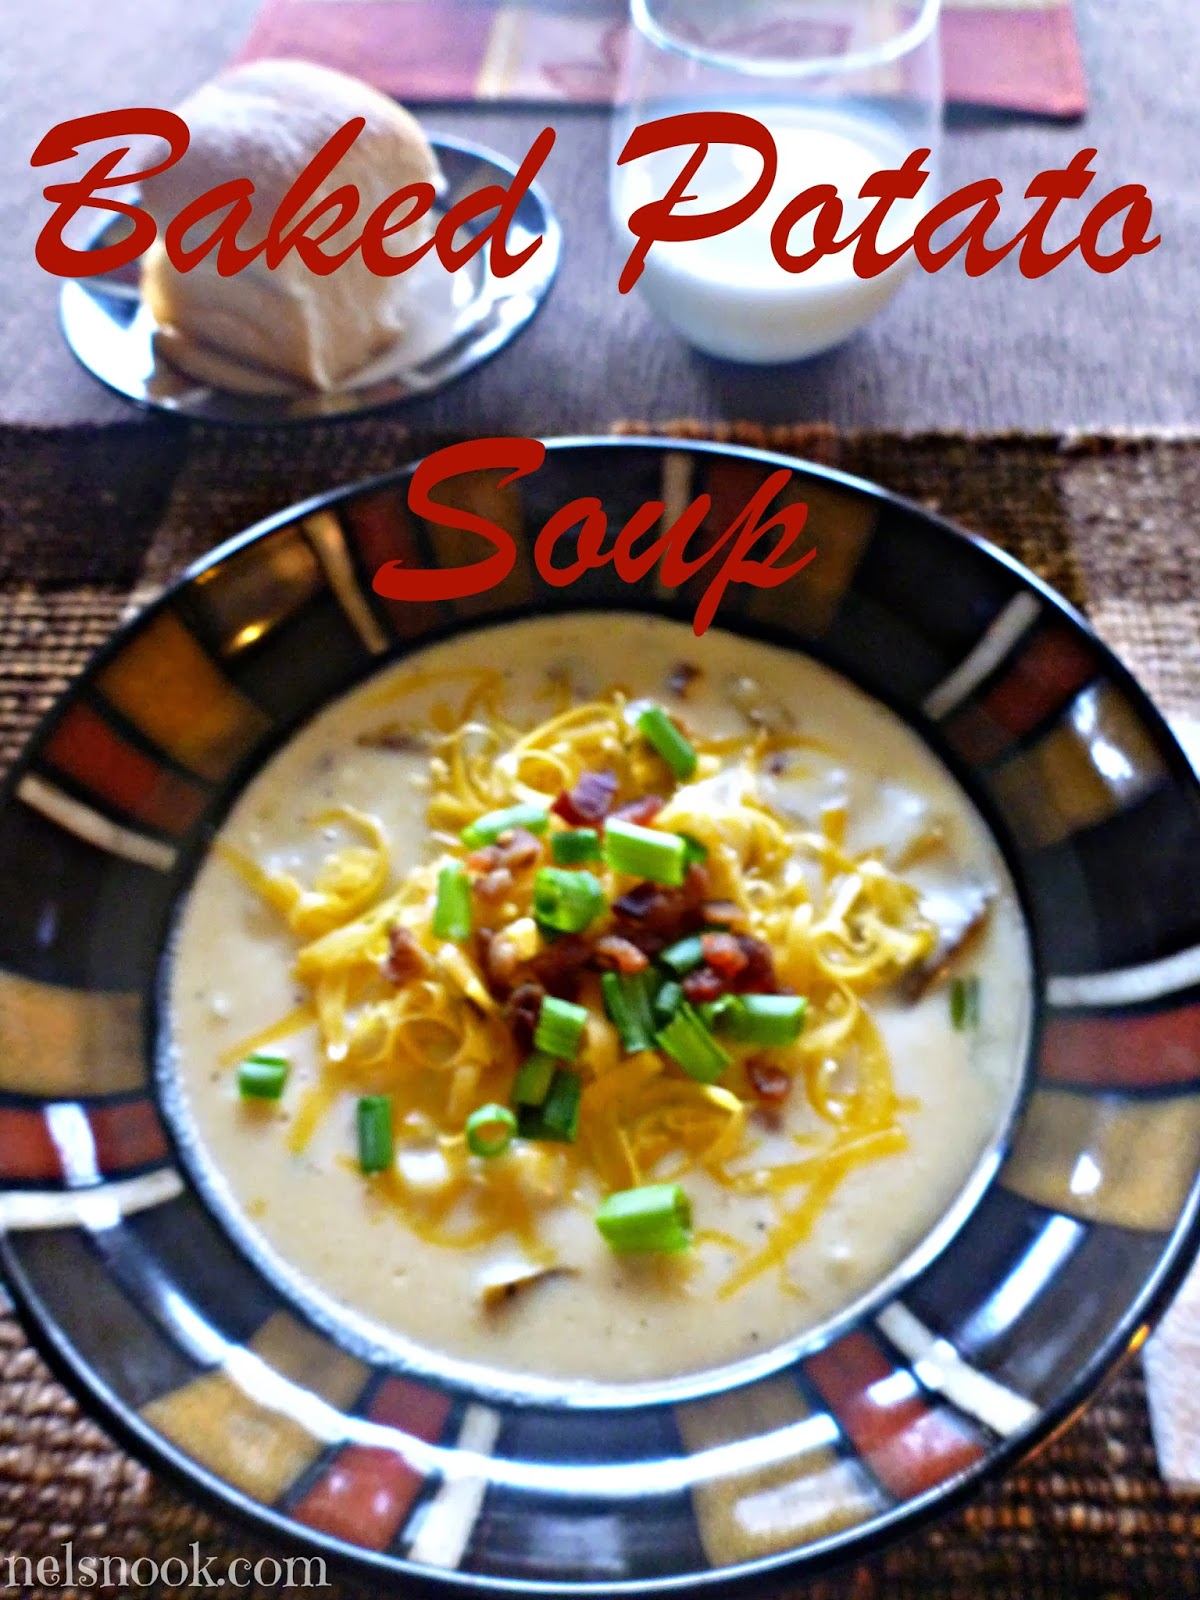 This baked potato soup is amazing for a crowd or for leftovers!